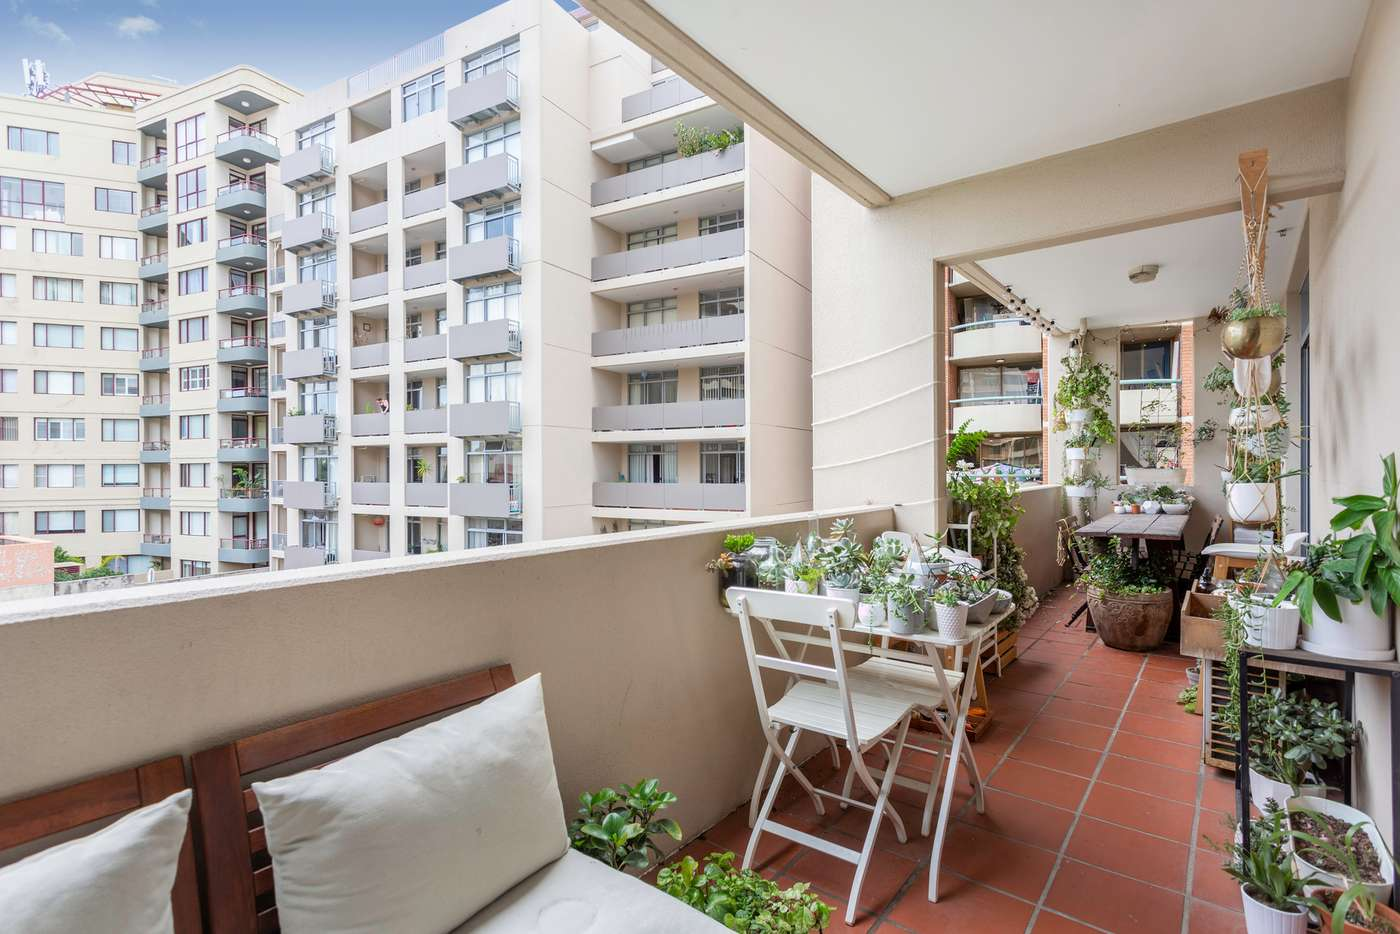 Main view of Homely apartment listing, 52/2-8 Brisbane Street, Surry Hills NSW 2010